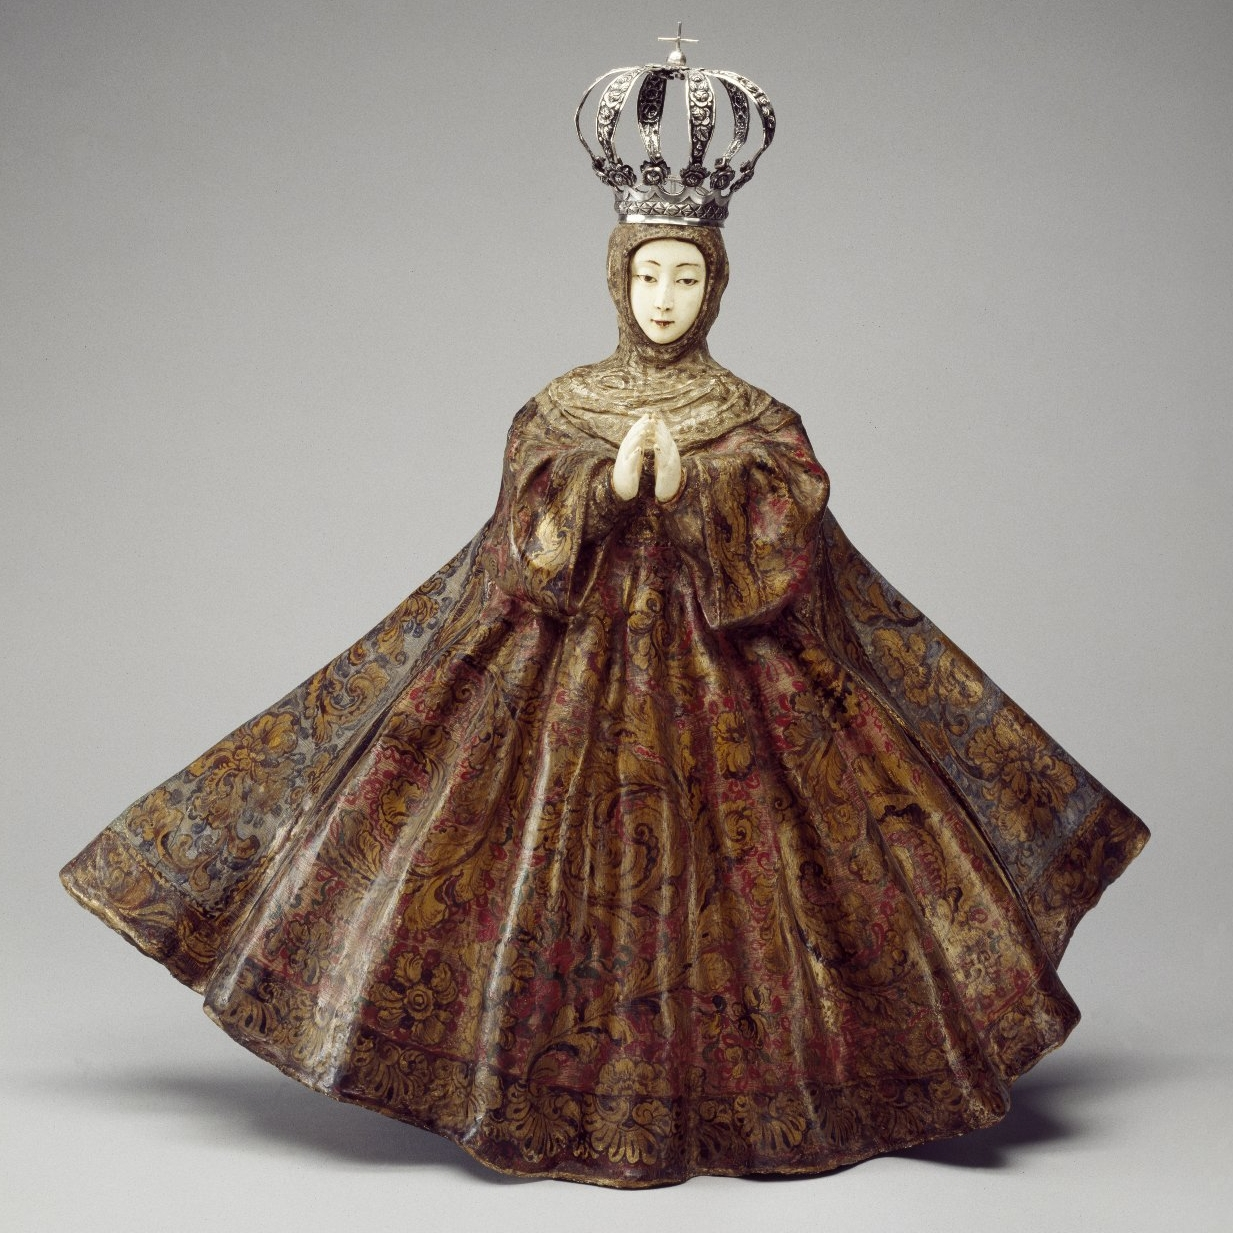 <p>Unknown artist (Guatemala, Central America). <i>Virgin of the Immaculate Conception</i>, 18th century. Wood, ivory, pigment, gilding, gessoed cloth, silver, sculpture: 25<sup>7</sup>⁄<sub>8</sub> x 27 &#215; 10<sup>1</sup>⁄<sub>4</sub> in. (65.7 &#215; 68.6 &#215; 26 cm), base: 9 1/4 &#215; 14 1/2 &#215; 23 in. (23.5 &#215; 36.8 &#215; 58.4 cm). Brooklyn Museum, Frank L. Babbott Fund, 42.384</p>